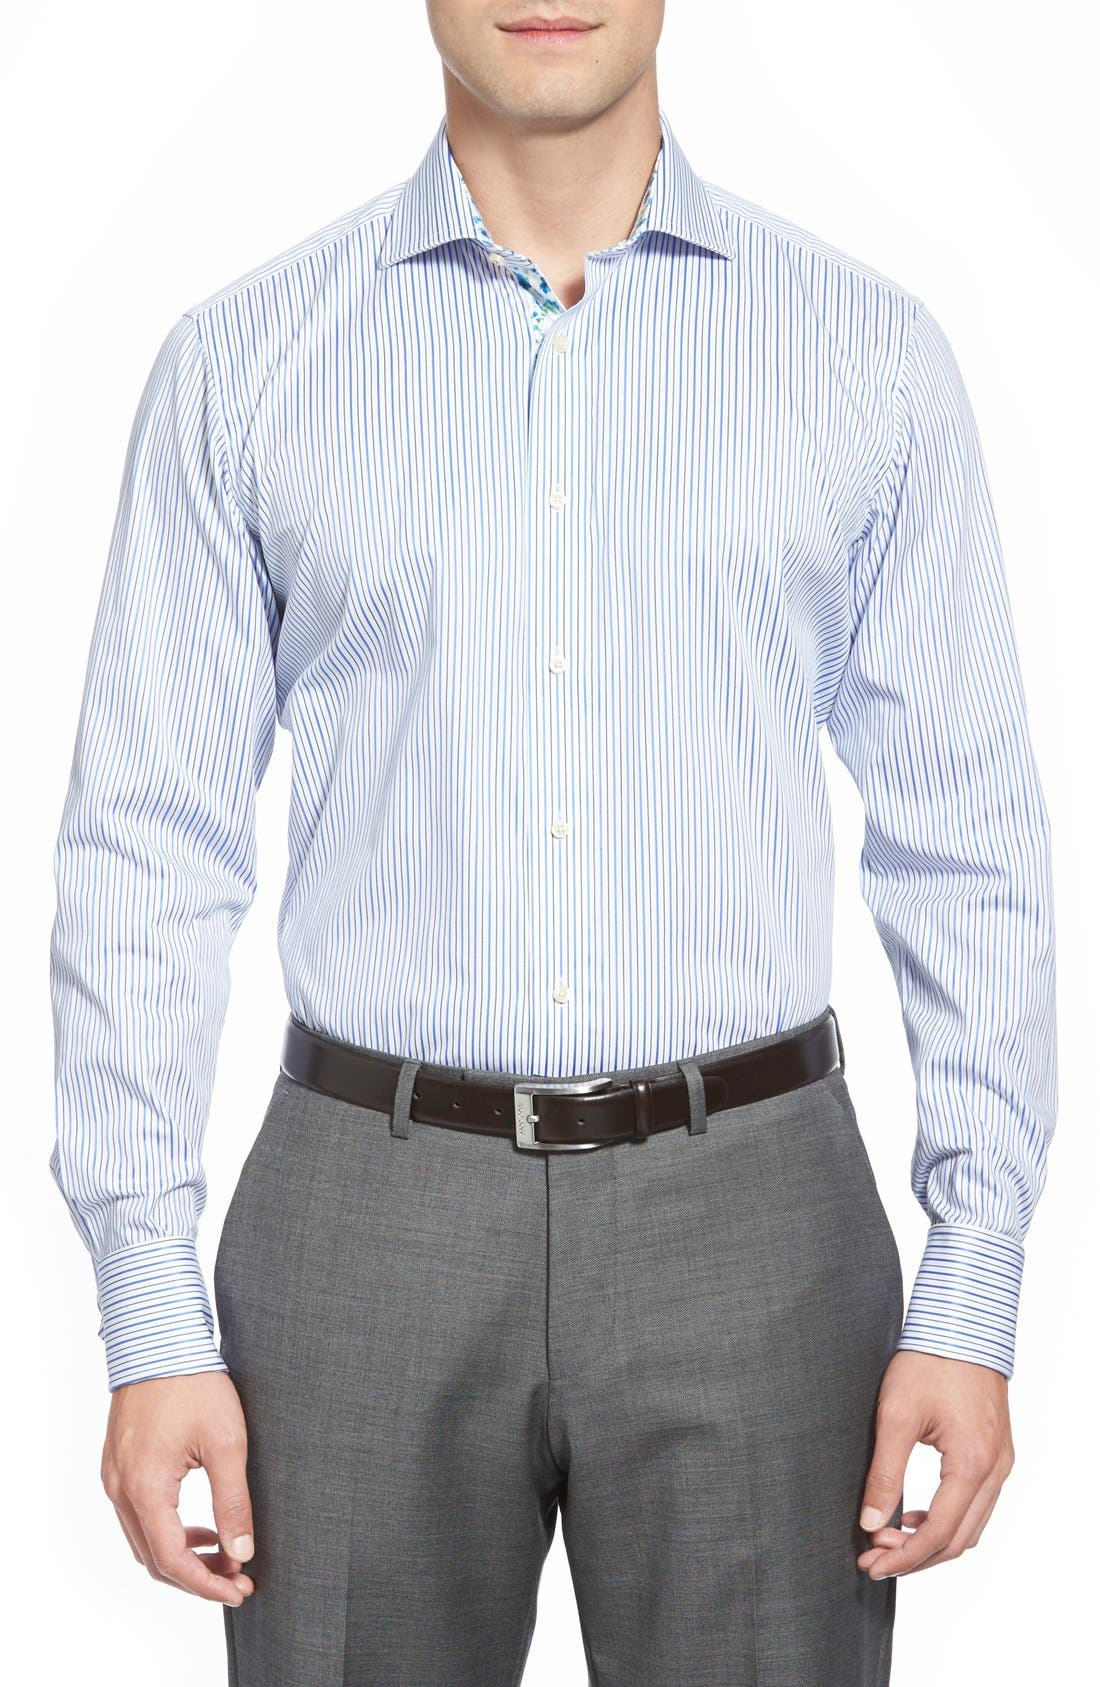 'Takeley' Trim Fit Stripe French Cuff Dress Shirt,                             Alternate thumbnail 2, color,                             421